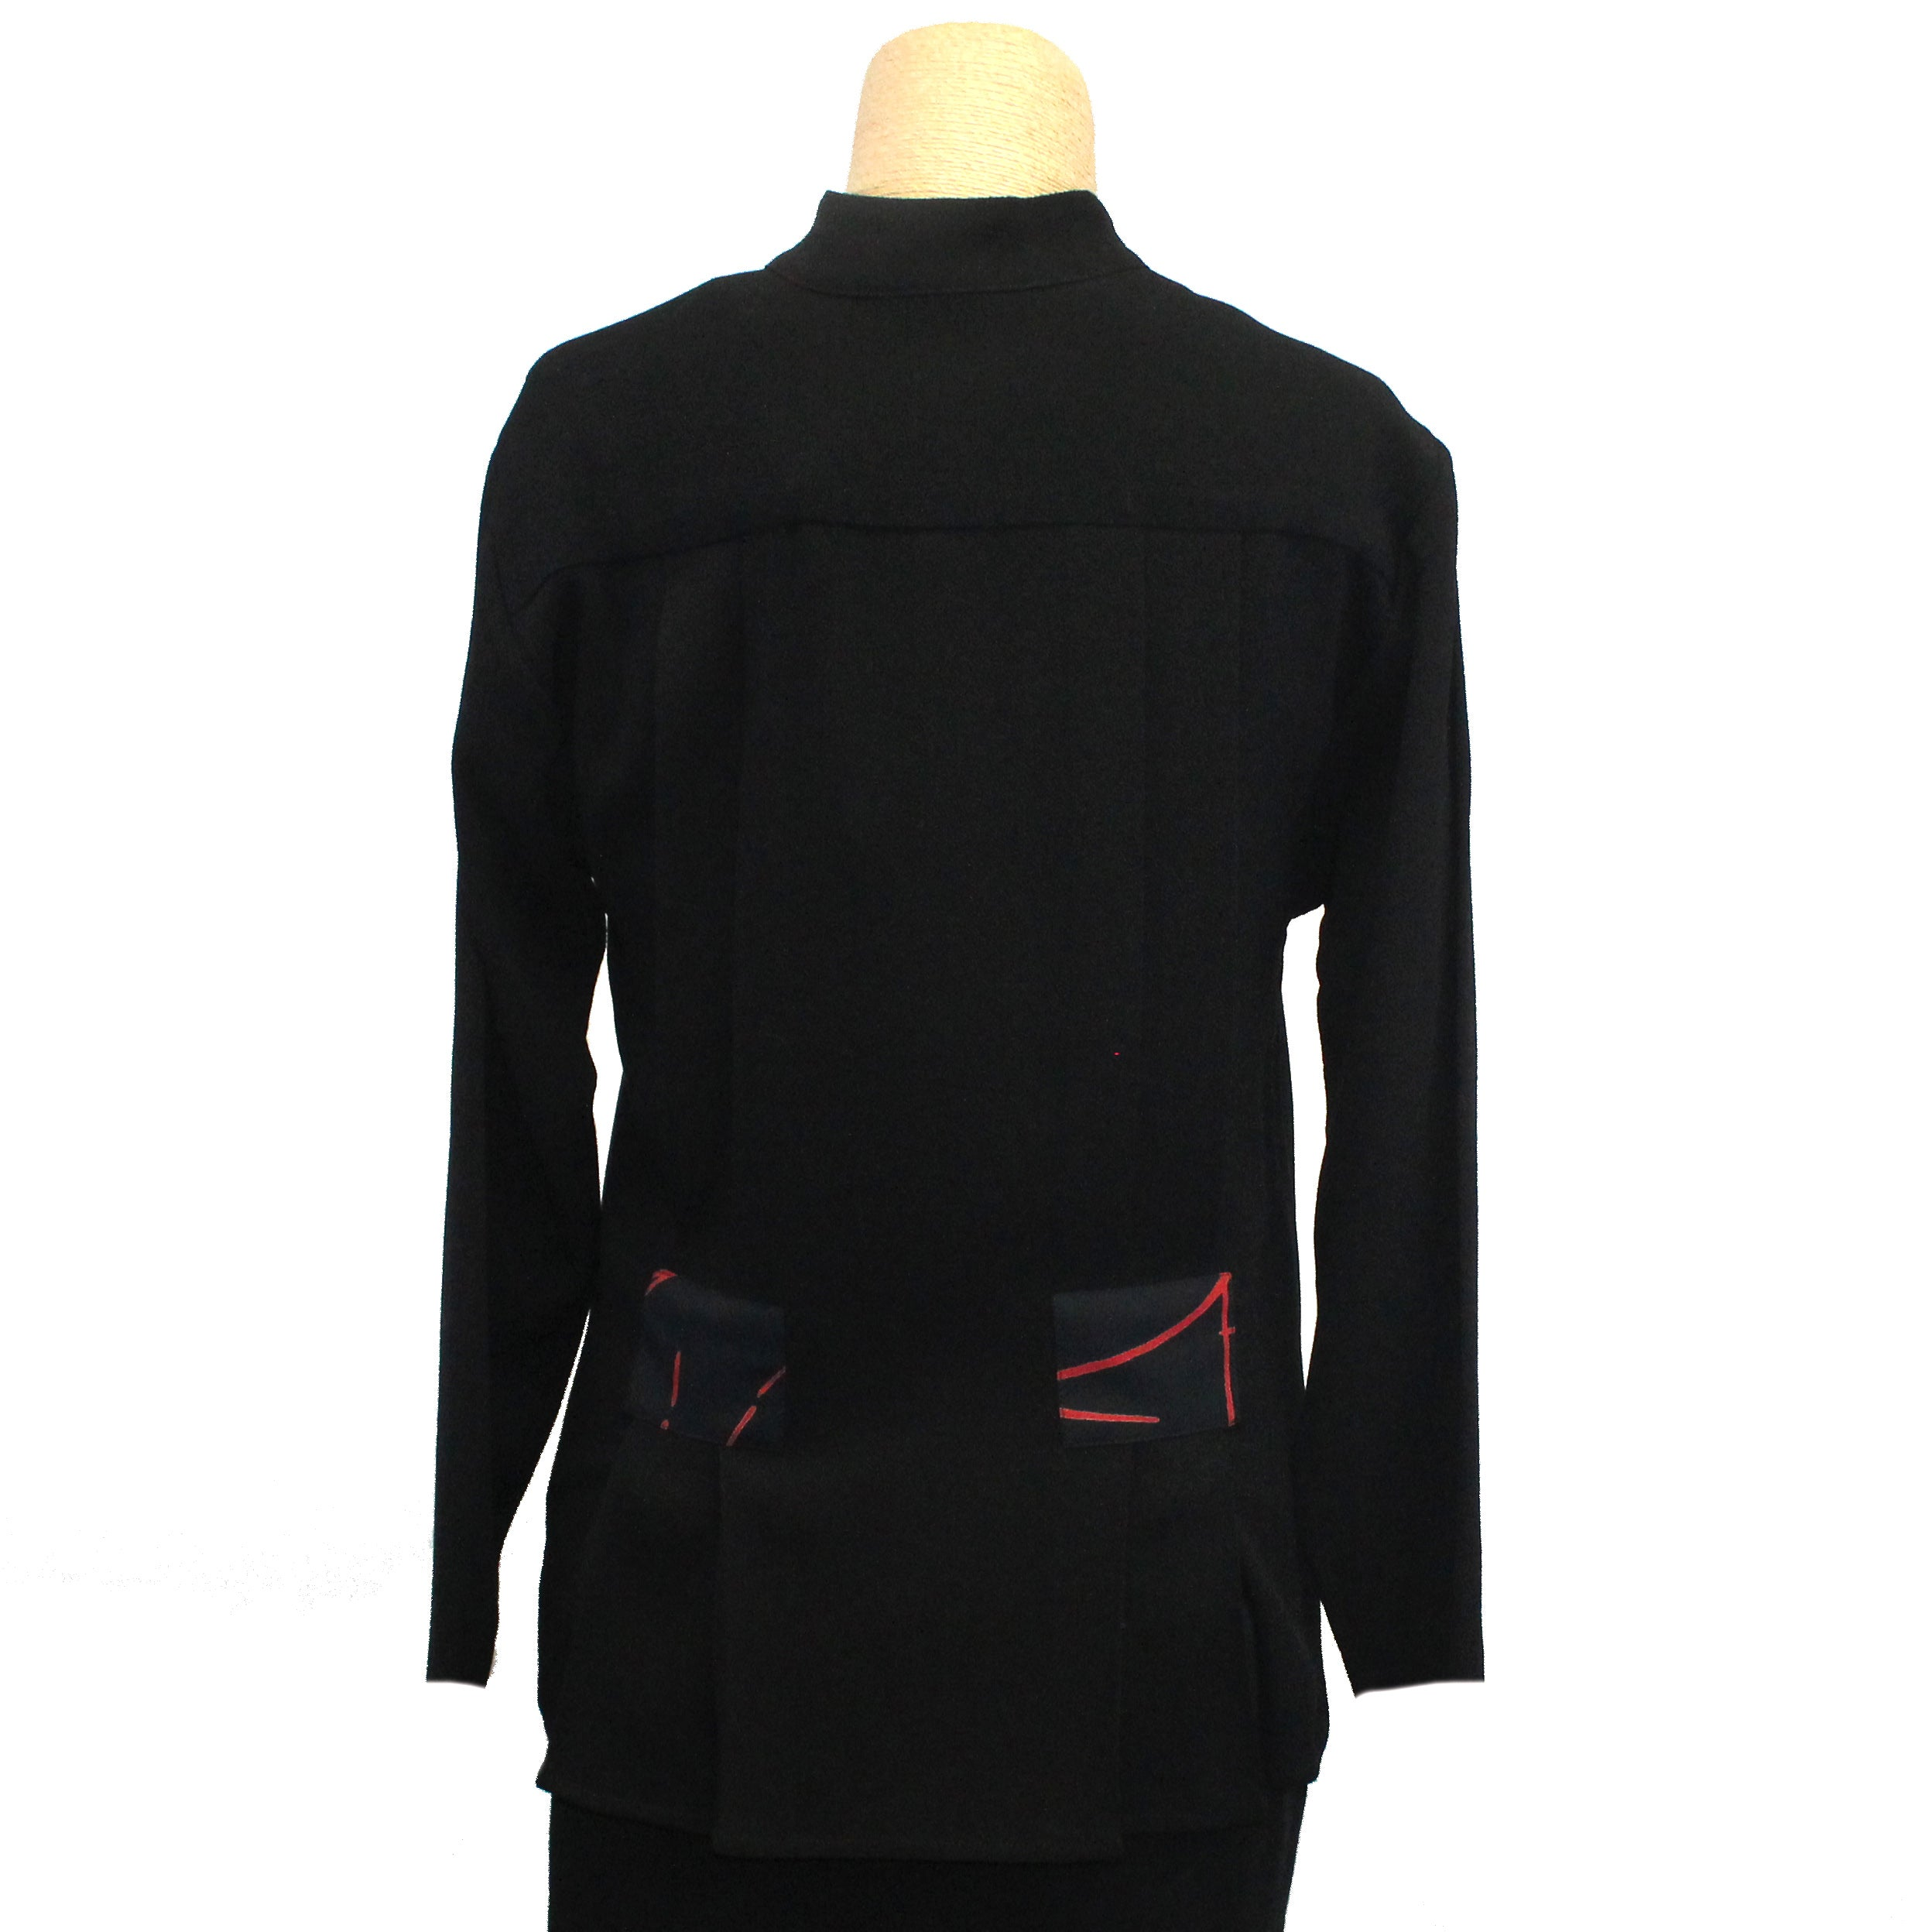 Marla Duran Shirt, Asian, Black/Red XXS & M